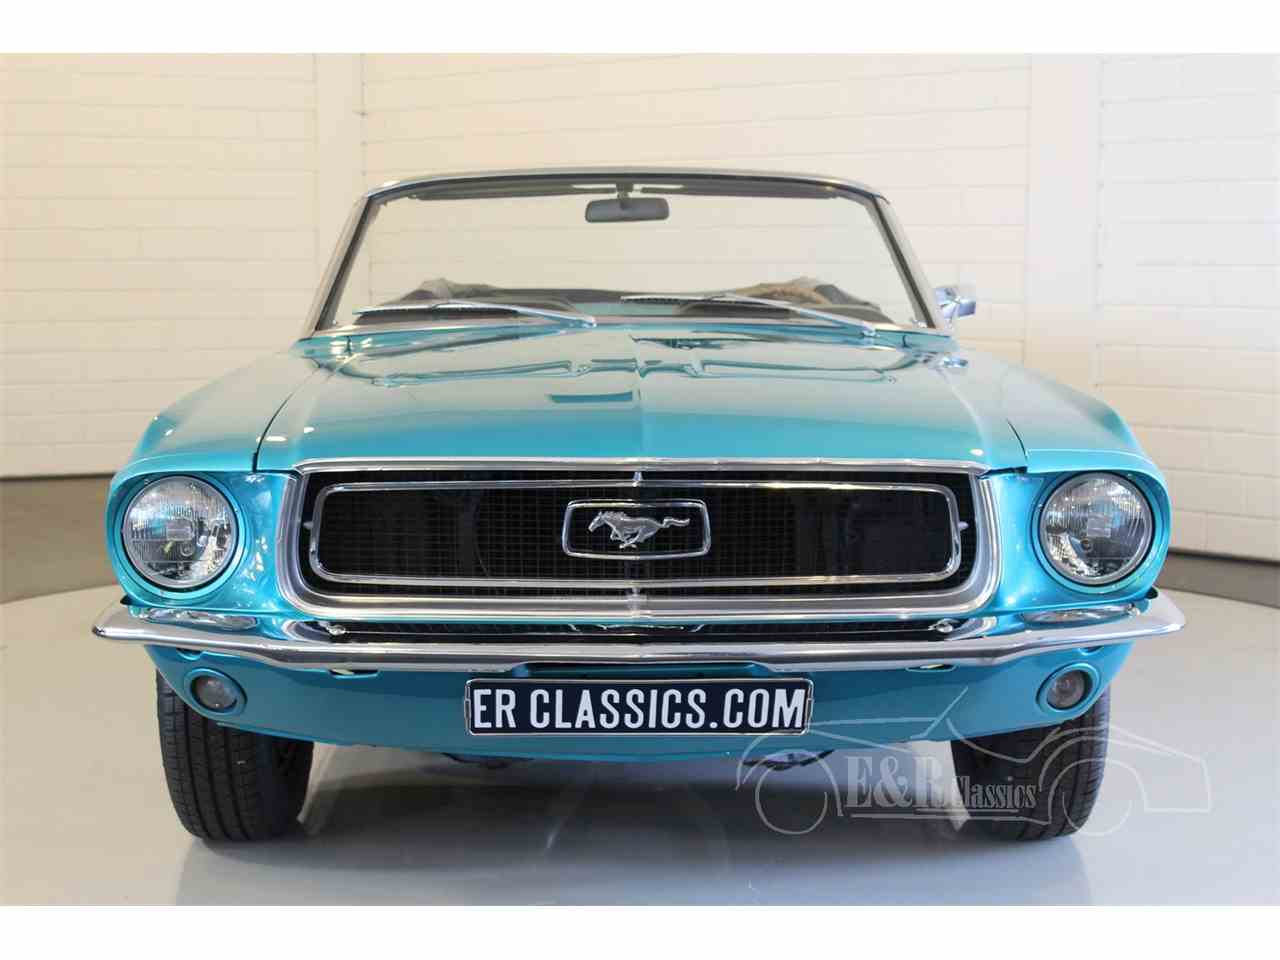 Large Picture of Classic 1968 Ford Mustang located in Noord Brabant - $46,500.00 Offered by E & R Classics - M9HP